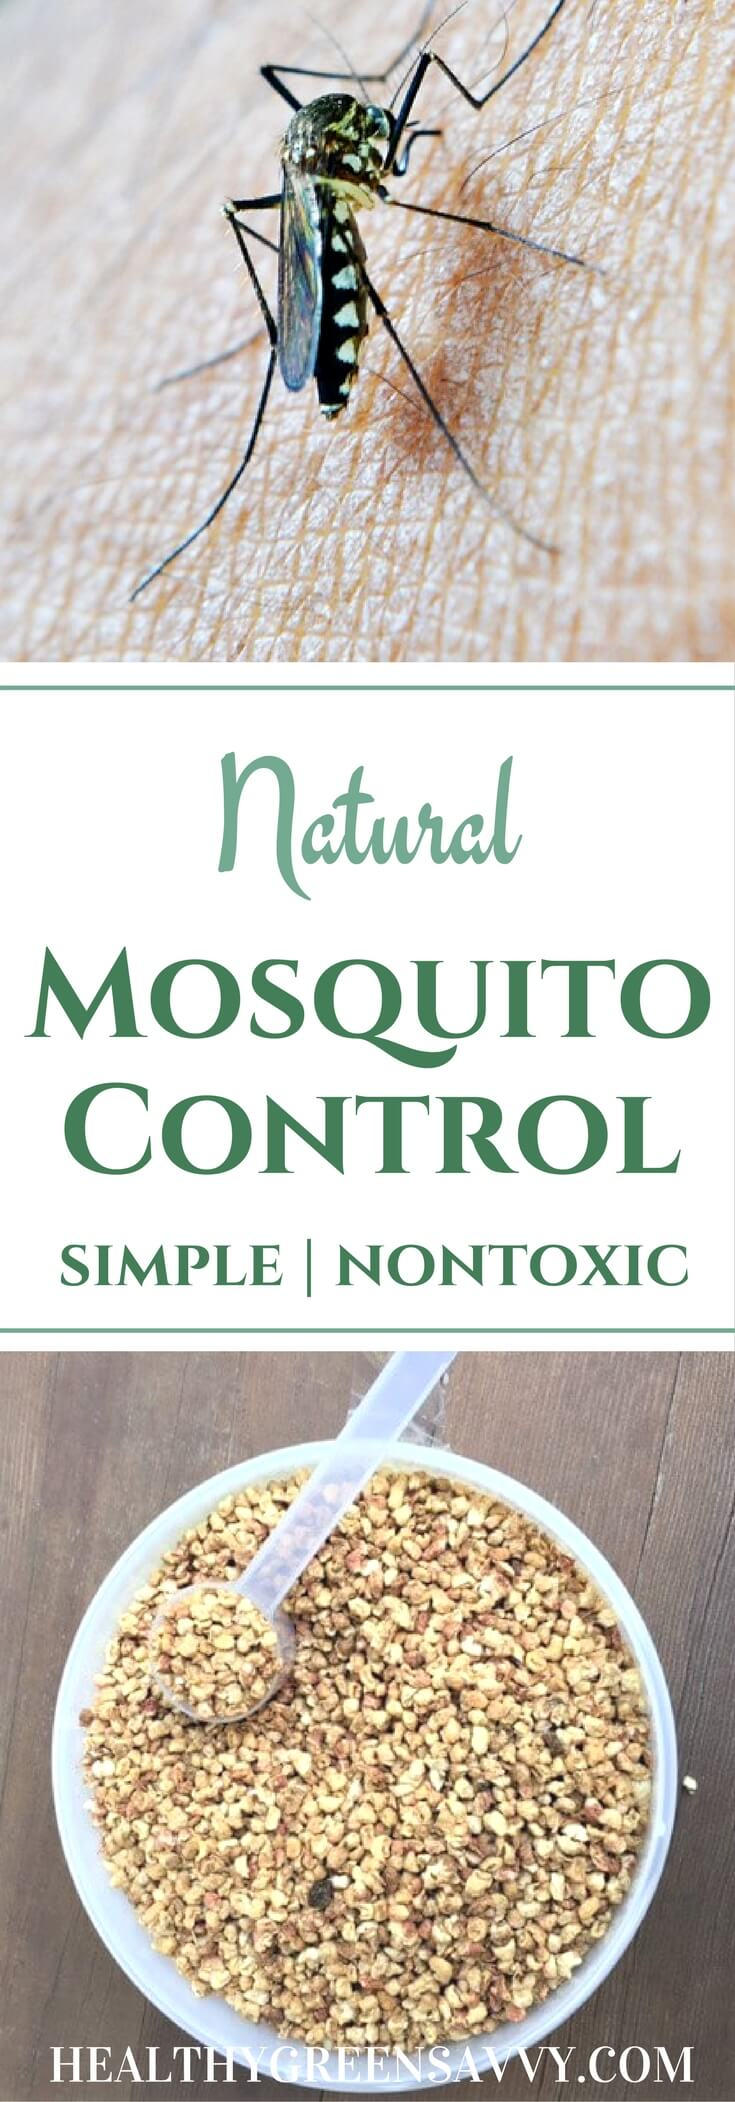 Image Result For Yard Treatment For Mosquitoes